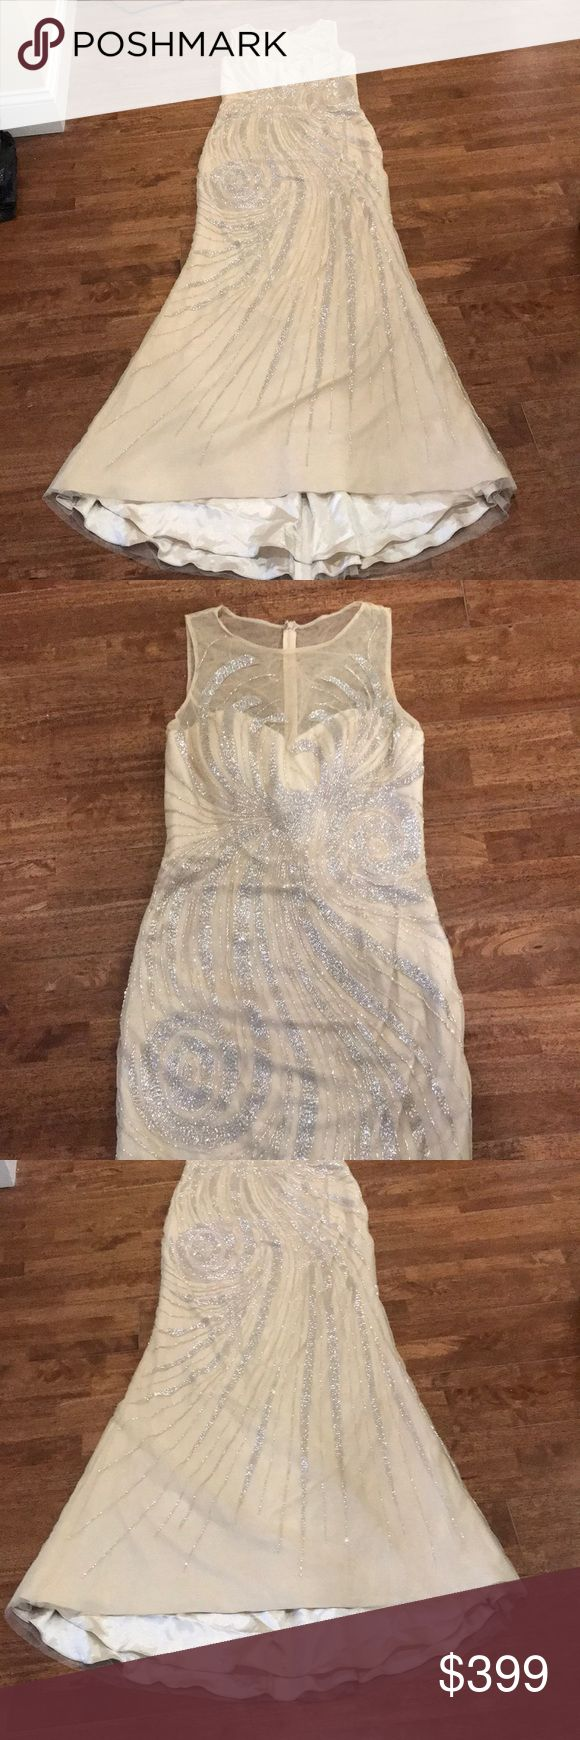 Champagne Evening dress with silver beading New with tags. Elegant Dress with fit and flare bodice and a tail at the back, fully lined. Comes with extra replacement beads Alyce Paris Dresses